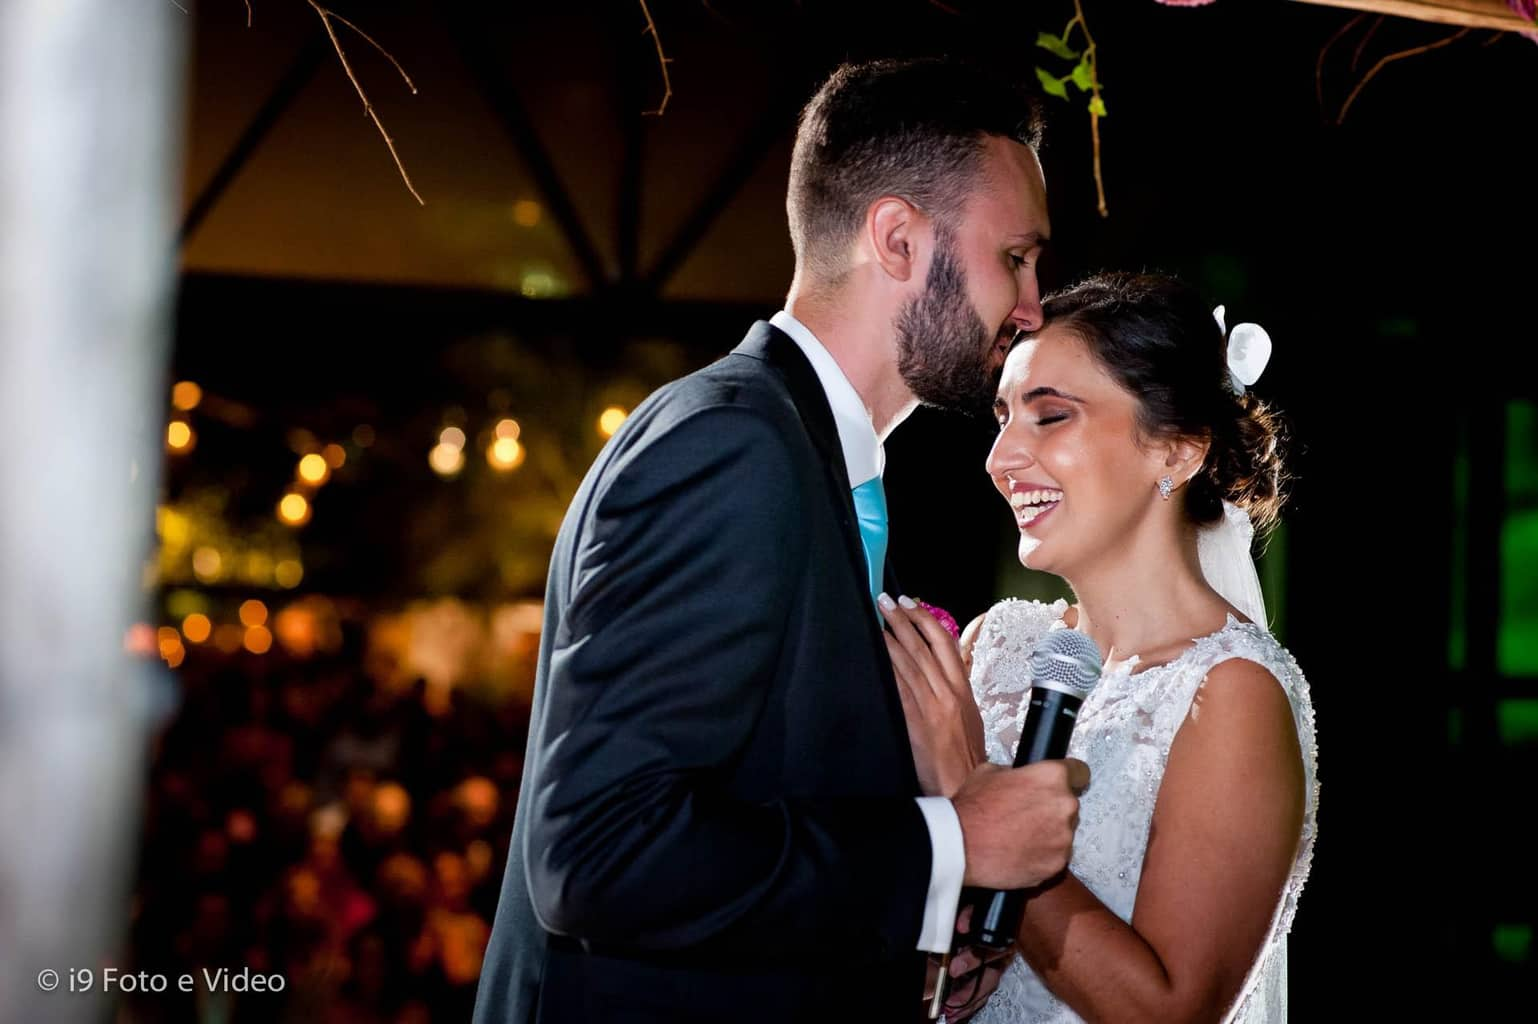 Casamento-Monique-e-Leonardo-cerimonia-I9-Foto-e-Vídeo-id-visual-Largo-do-Arruda50